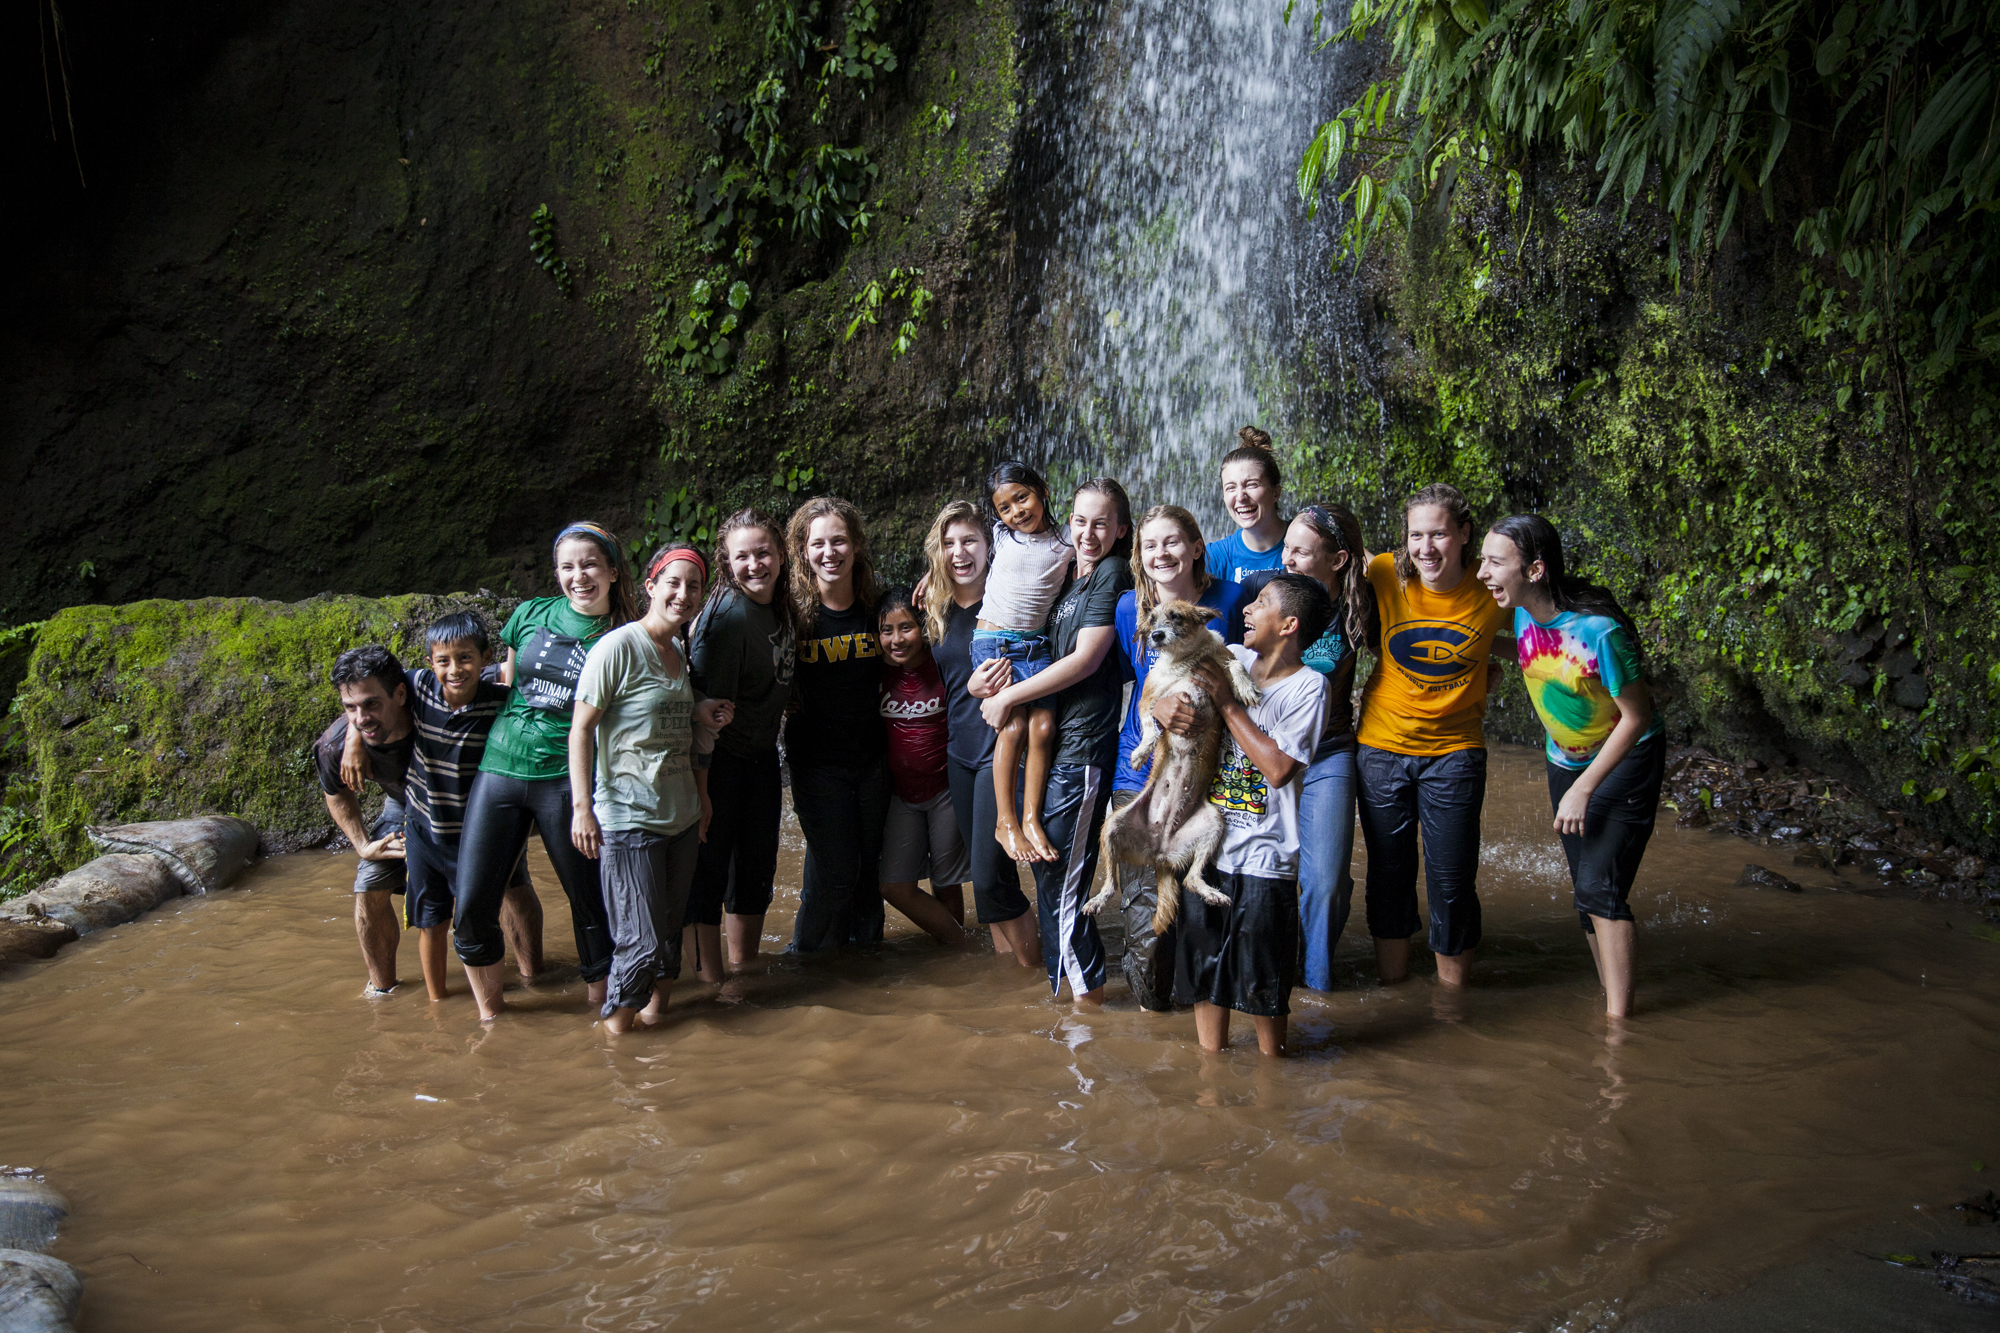 Student's and community members enjoying an afternoon at the local waterfall in the Santa Anita Commuity.